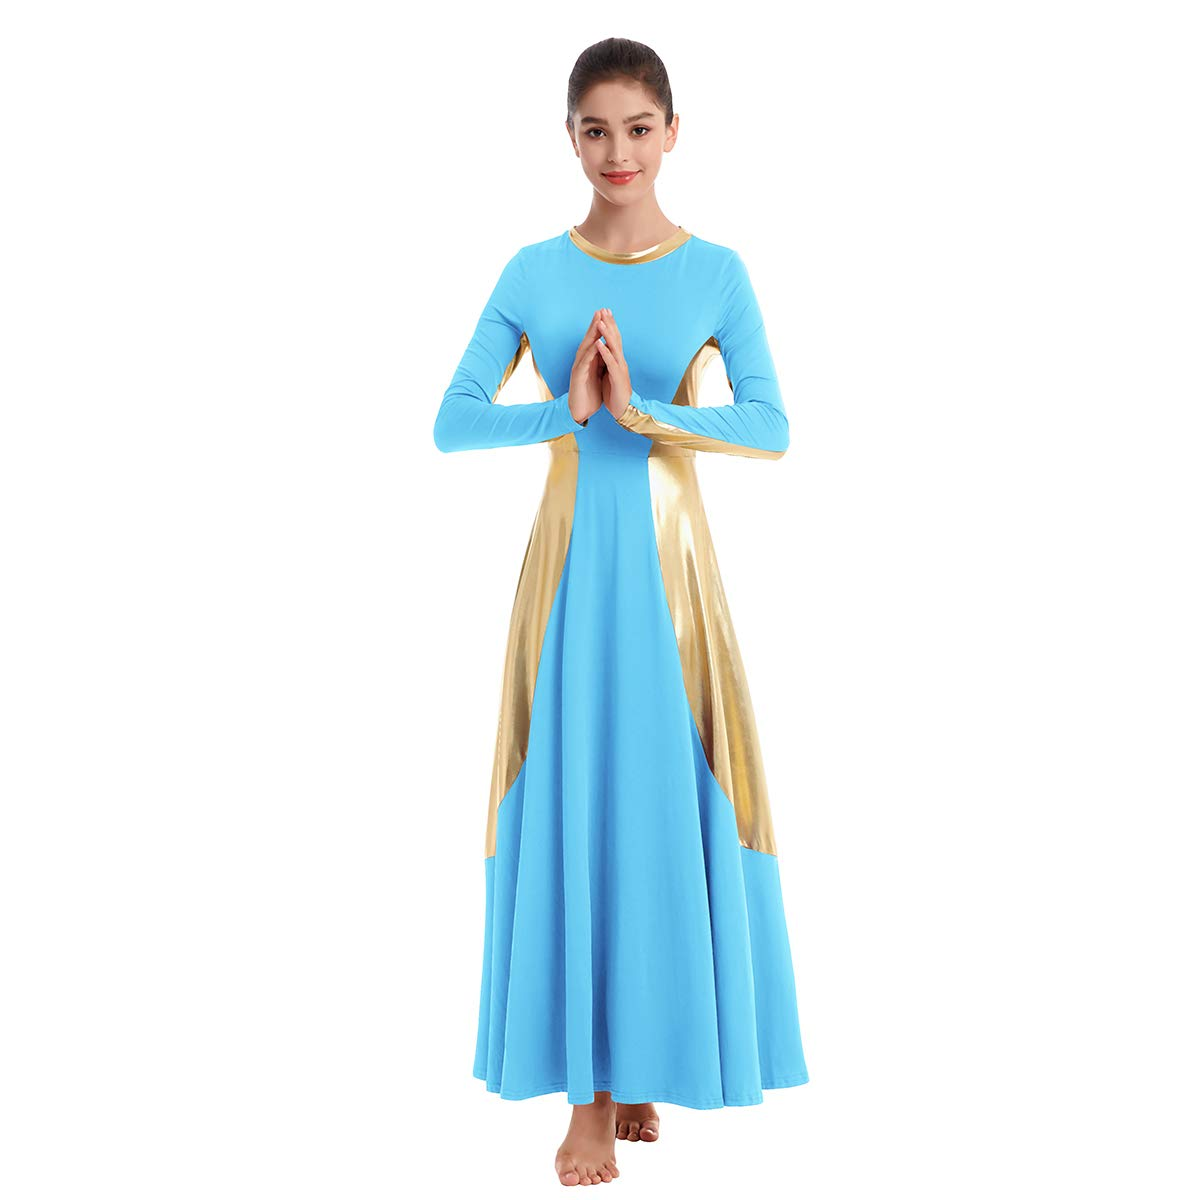 Womens Praise Robe Dance Cross Dress Long Bell Sleeve Liturgical Loose Fit Full Length Swing Worship Gown Skirt Costume Blue-Gold M by IBAKOM